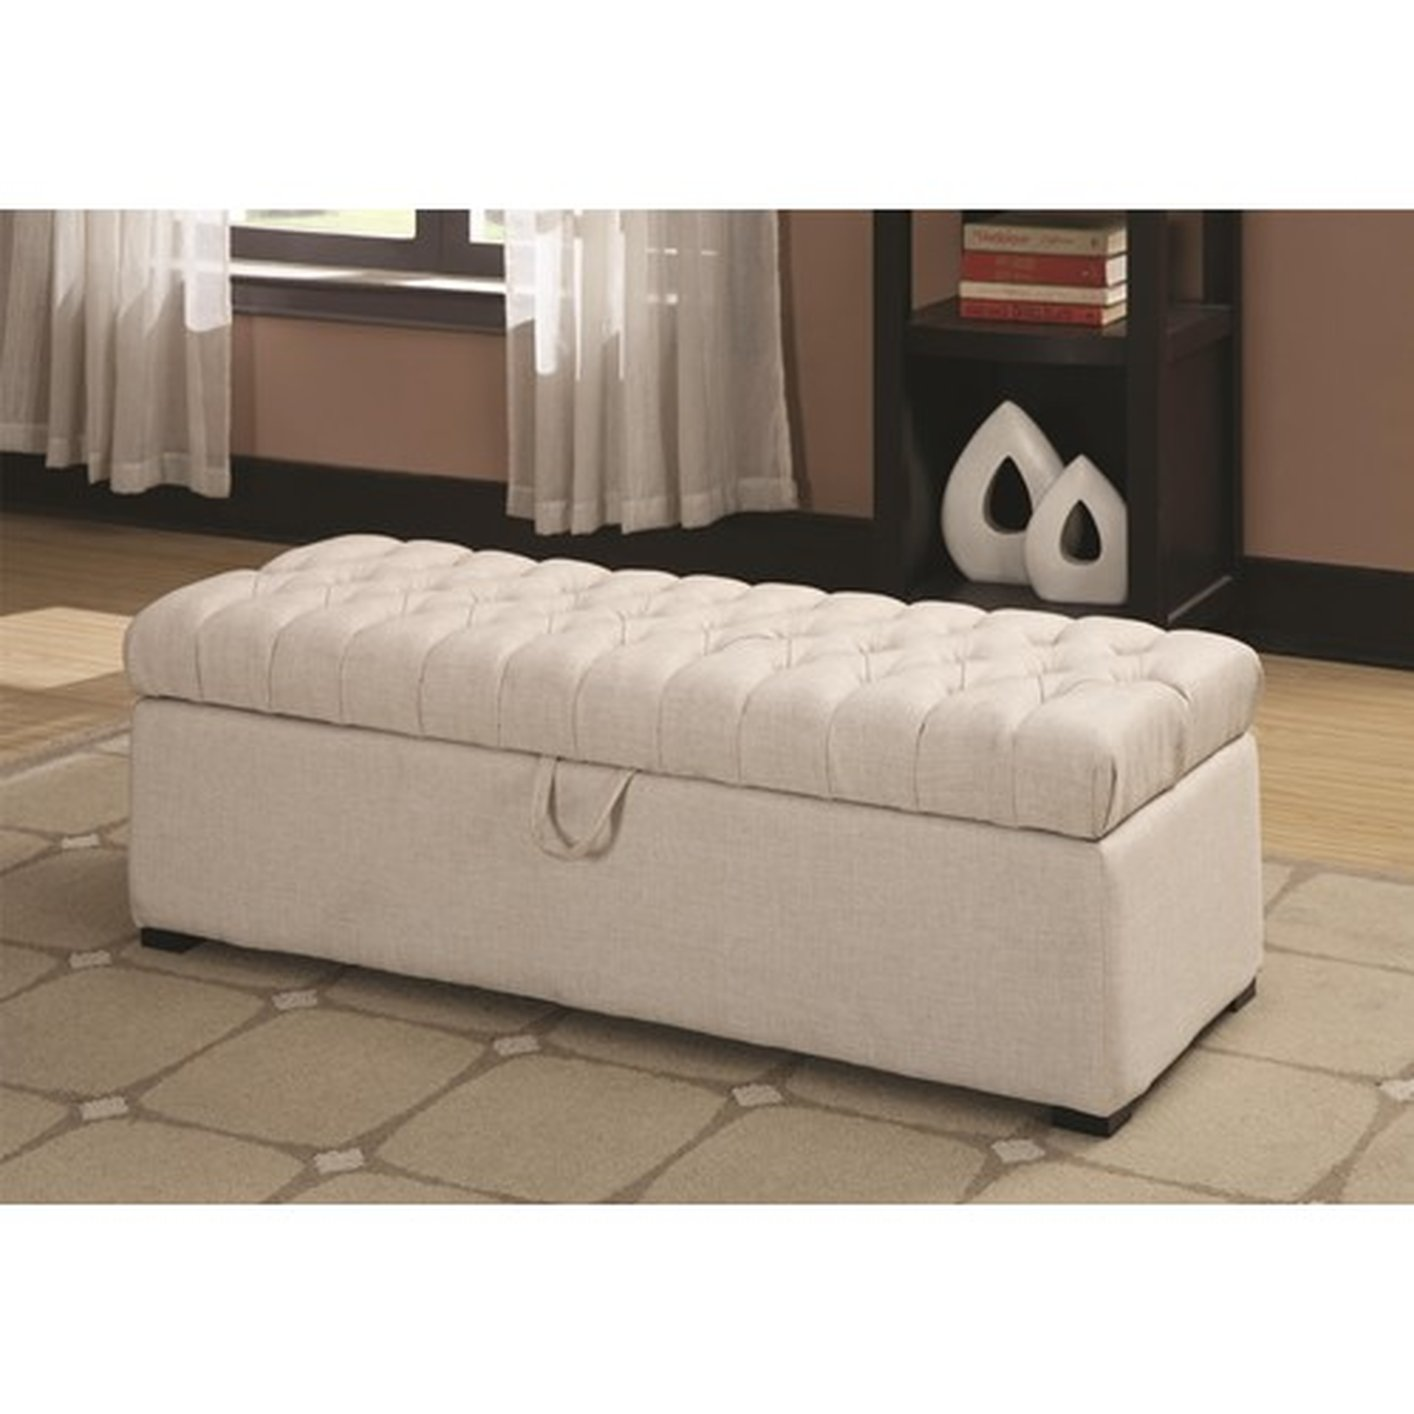 White Fabric Storage Bench  StealASofa Furniture Outlet